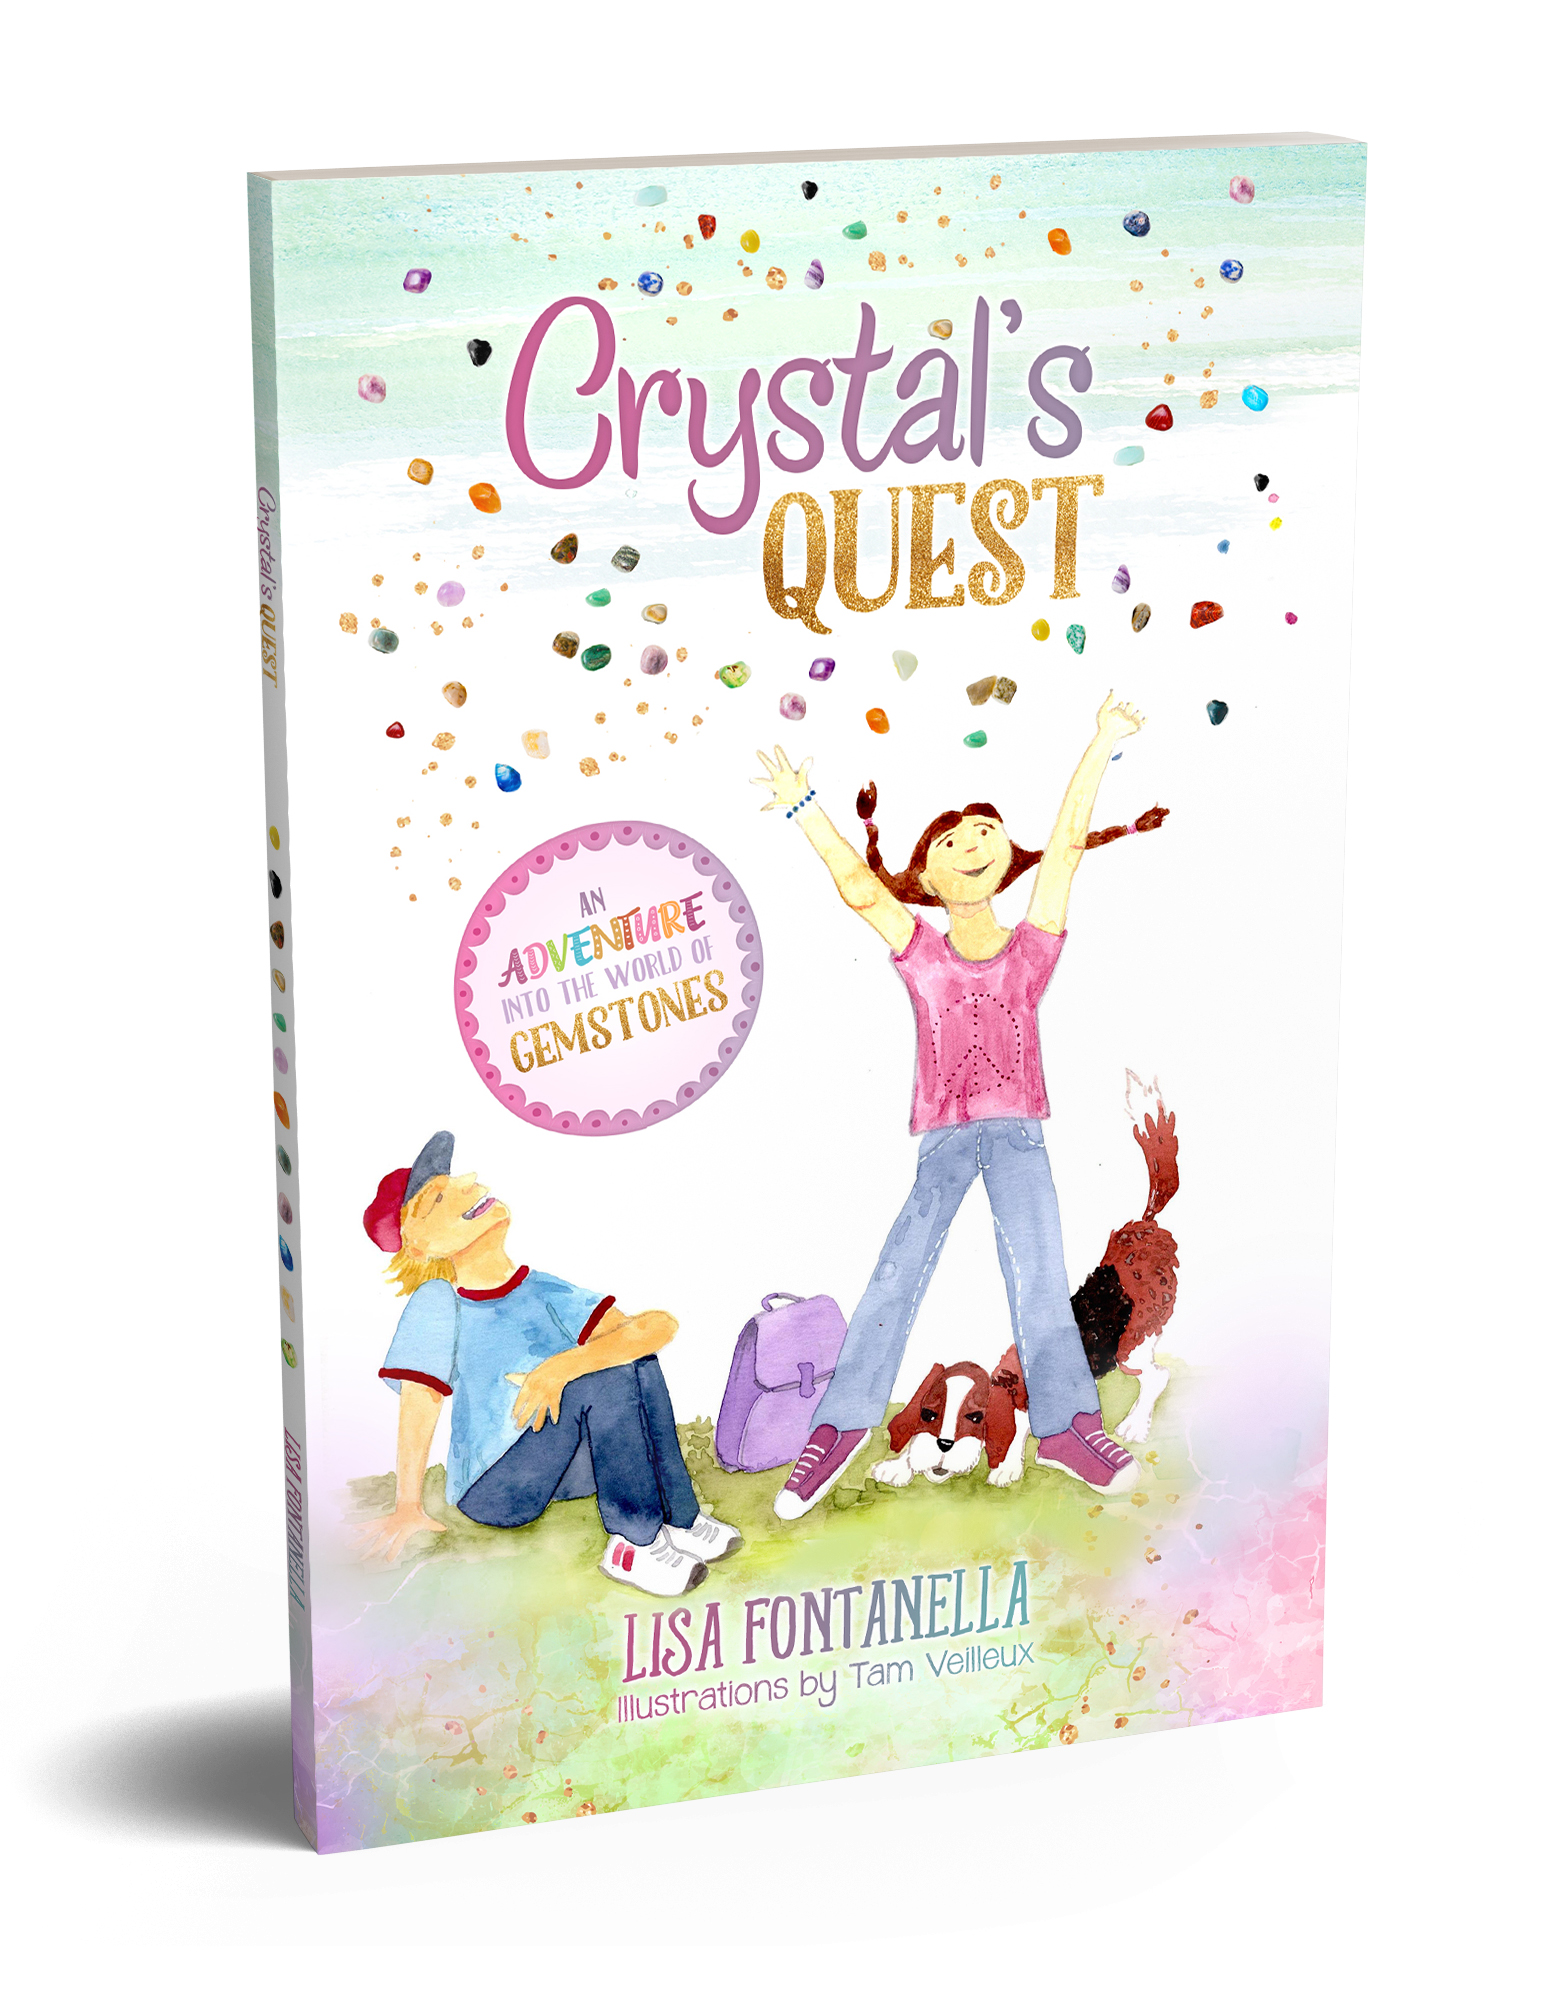 Award-Winning Finalist in the Children's Mind/Body/Spirit category of both the International Book Awards and Best Book Awards.